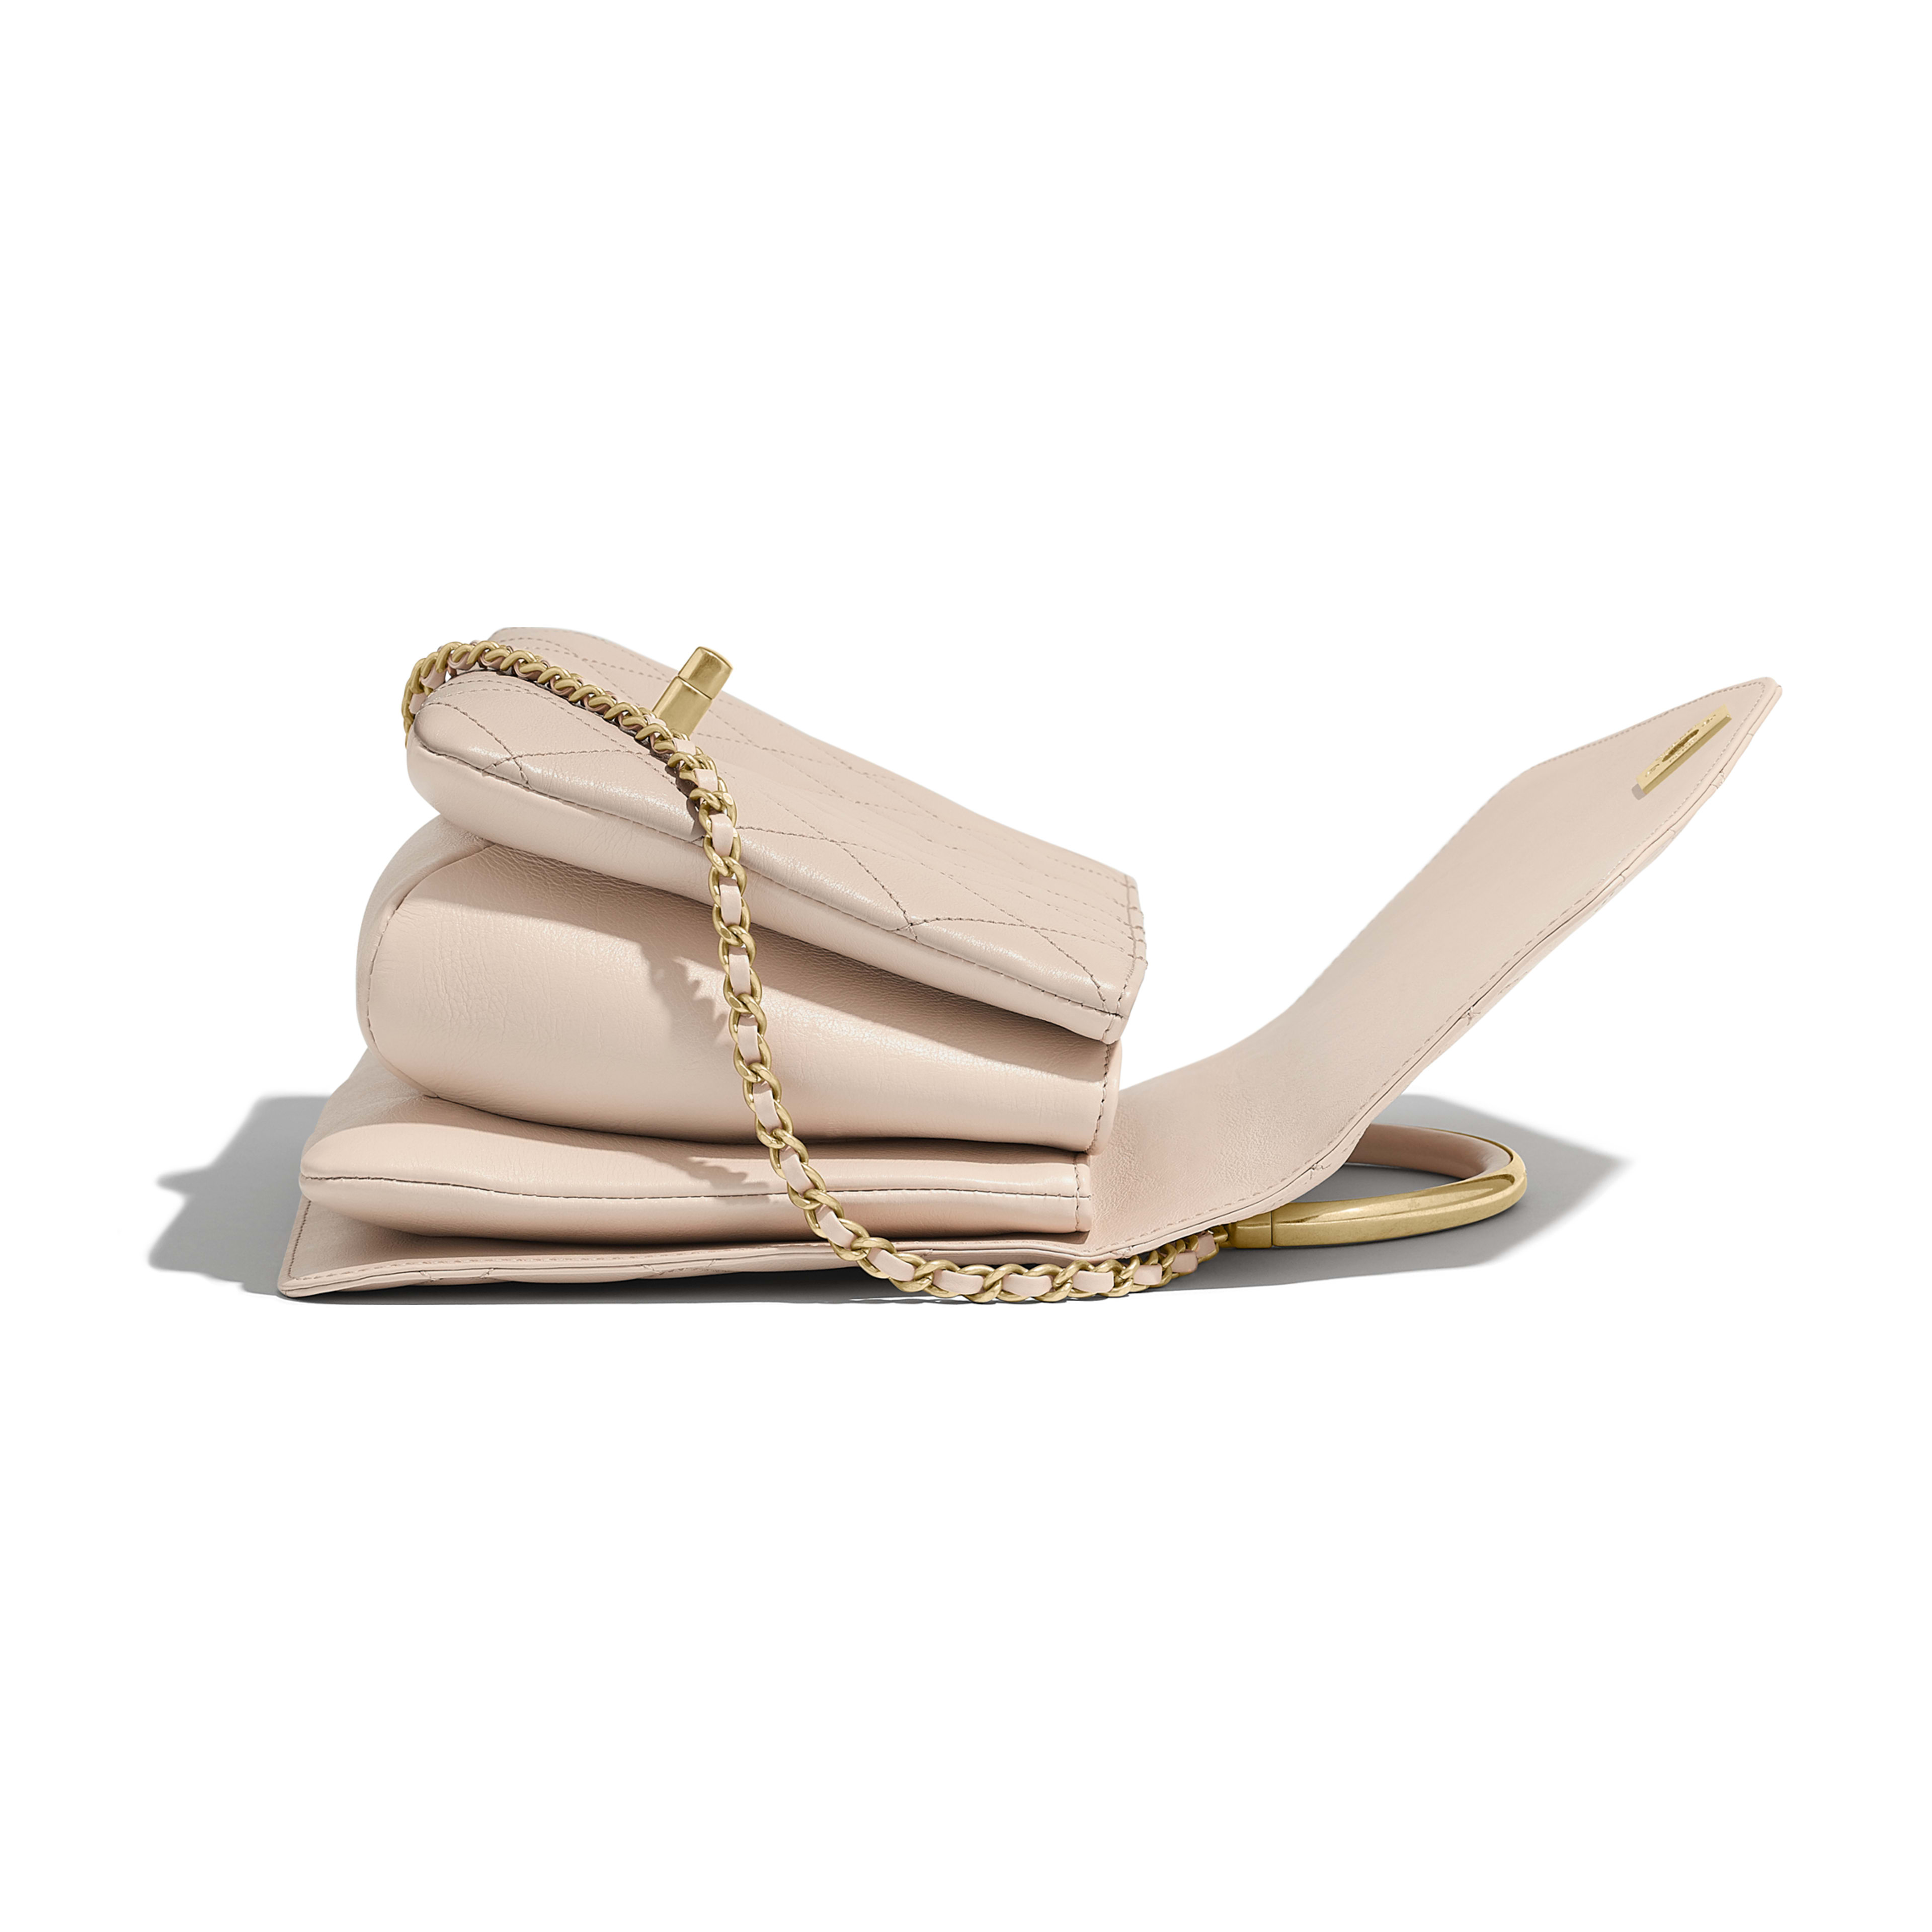 d0bed9fcb062 Flap Bag with Top Handle - Beige - Calfskin   Gold-Tone Metal - Other ...